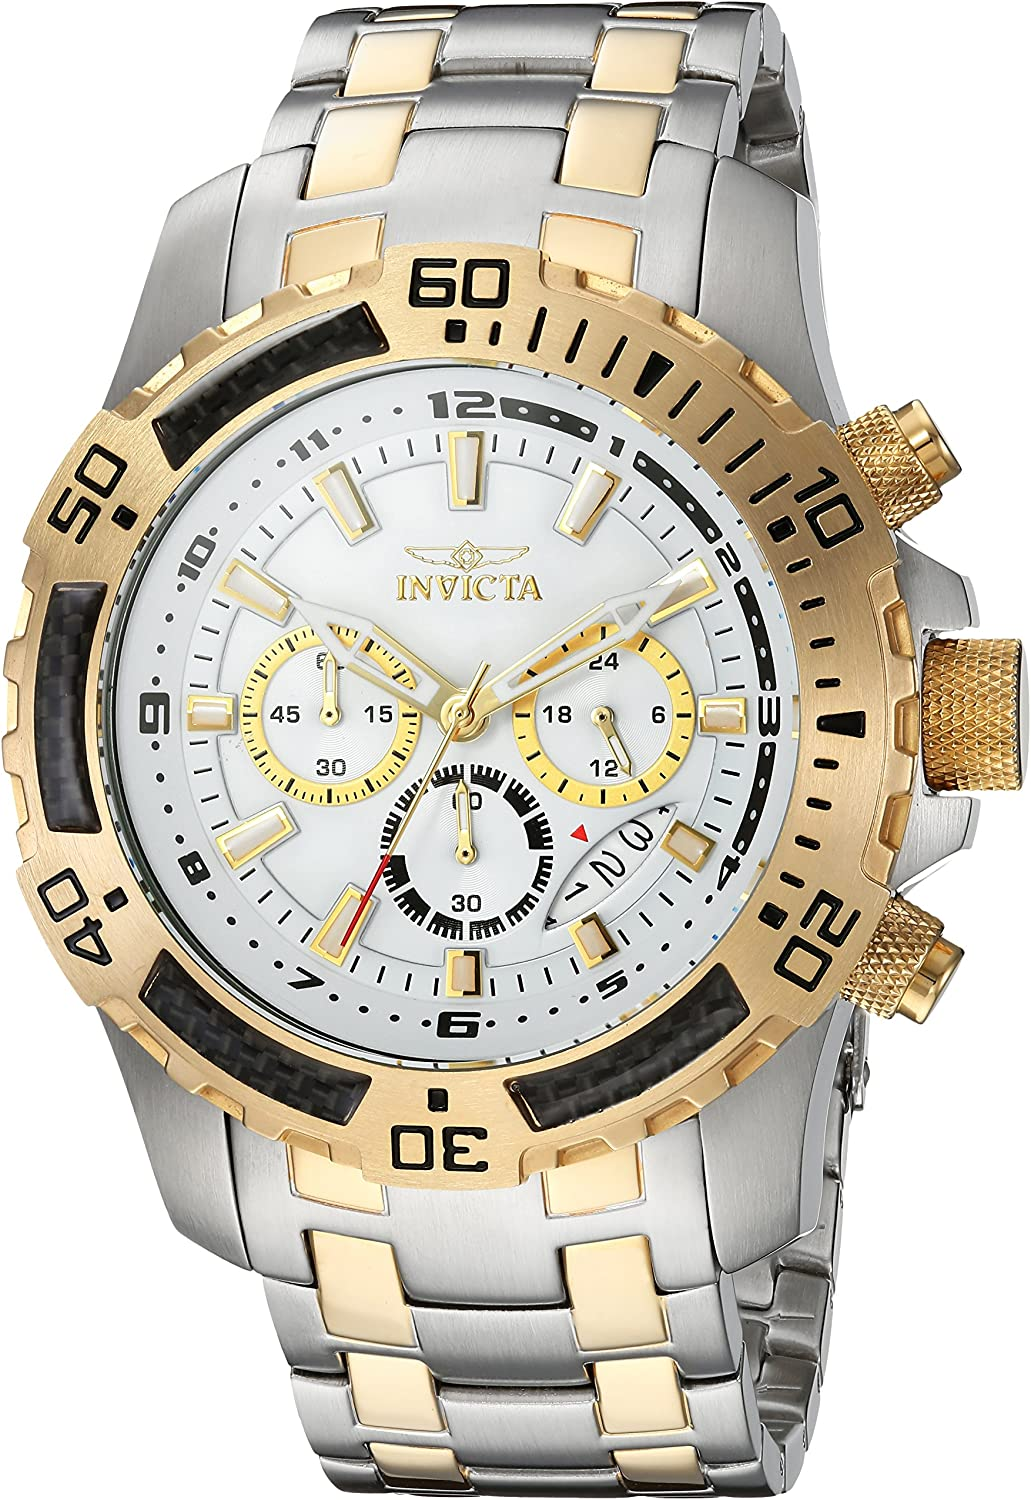 Invicta Men s Pro Diver Quartz Watch with Stainless-Steel Strap, Two Tone, 18.5 Model 24859